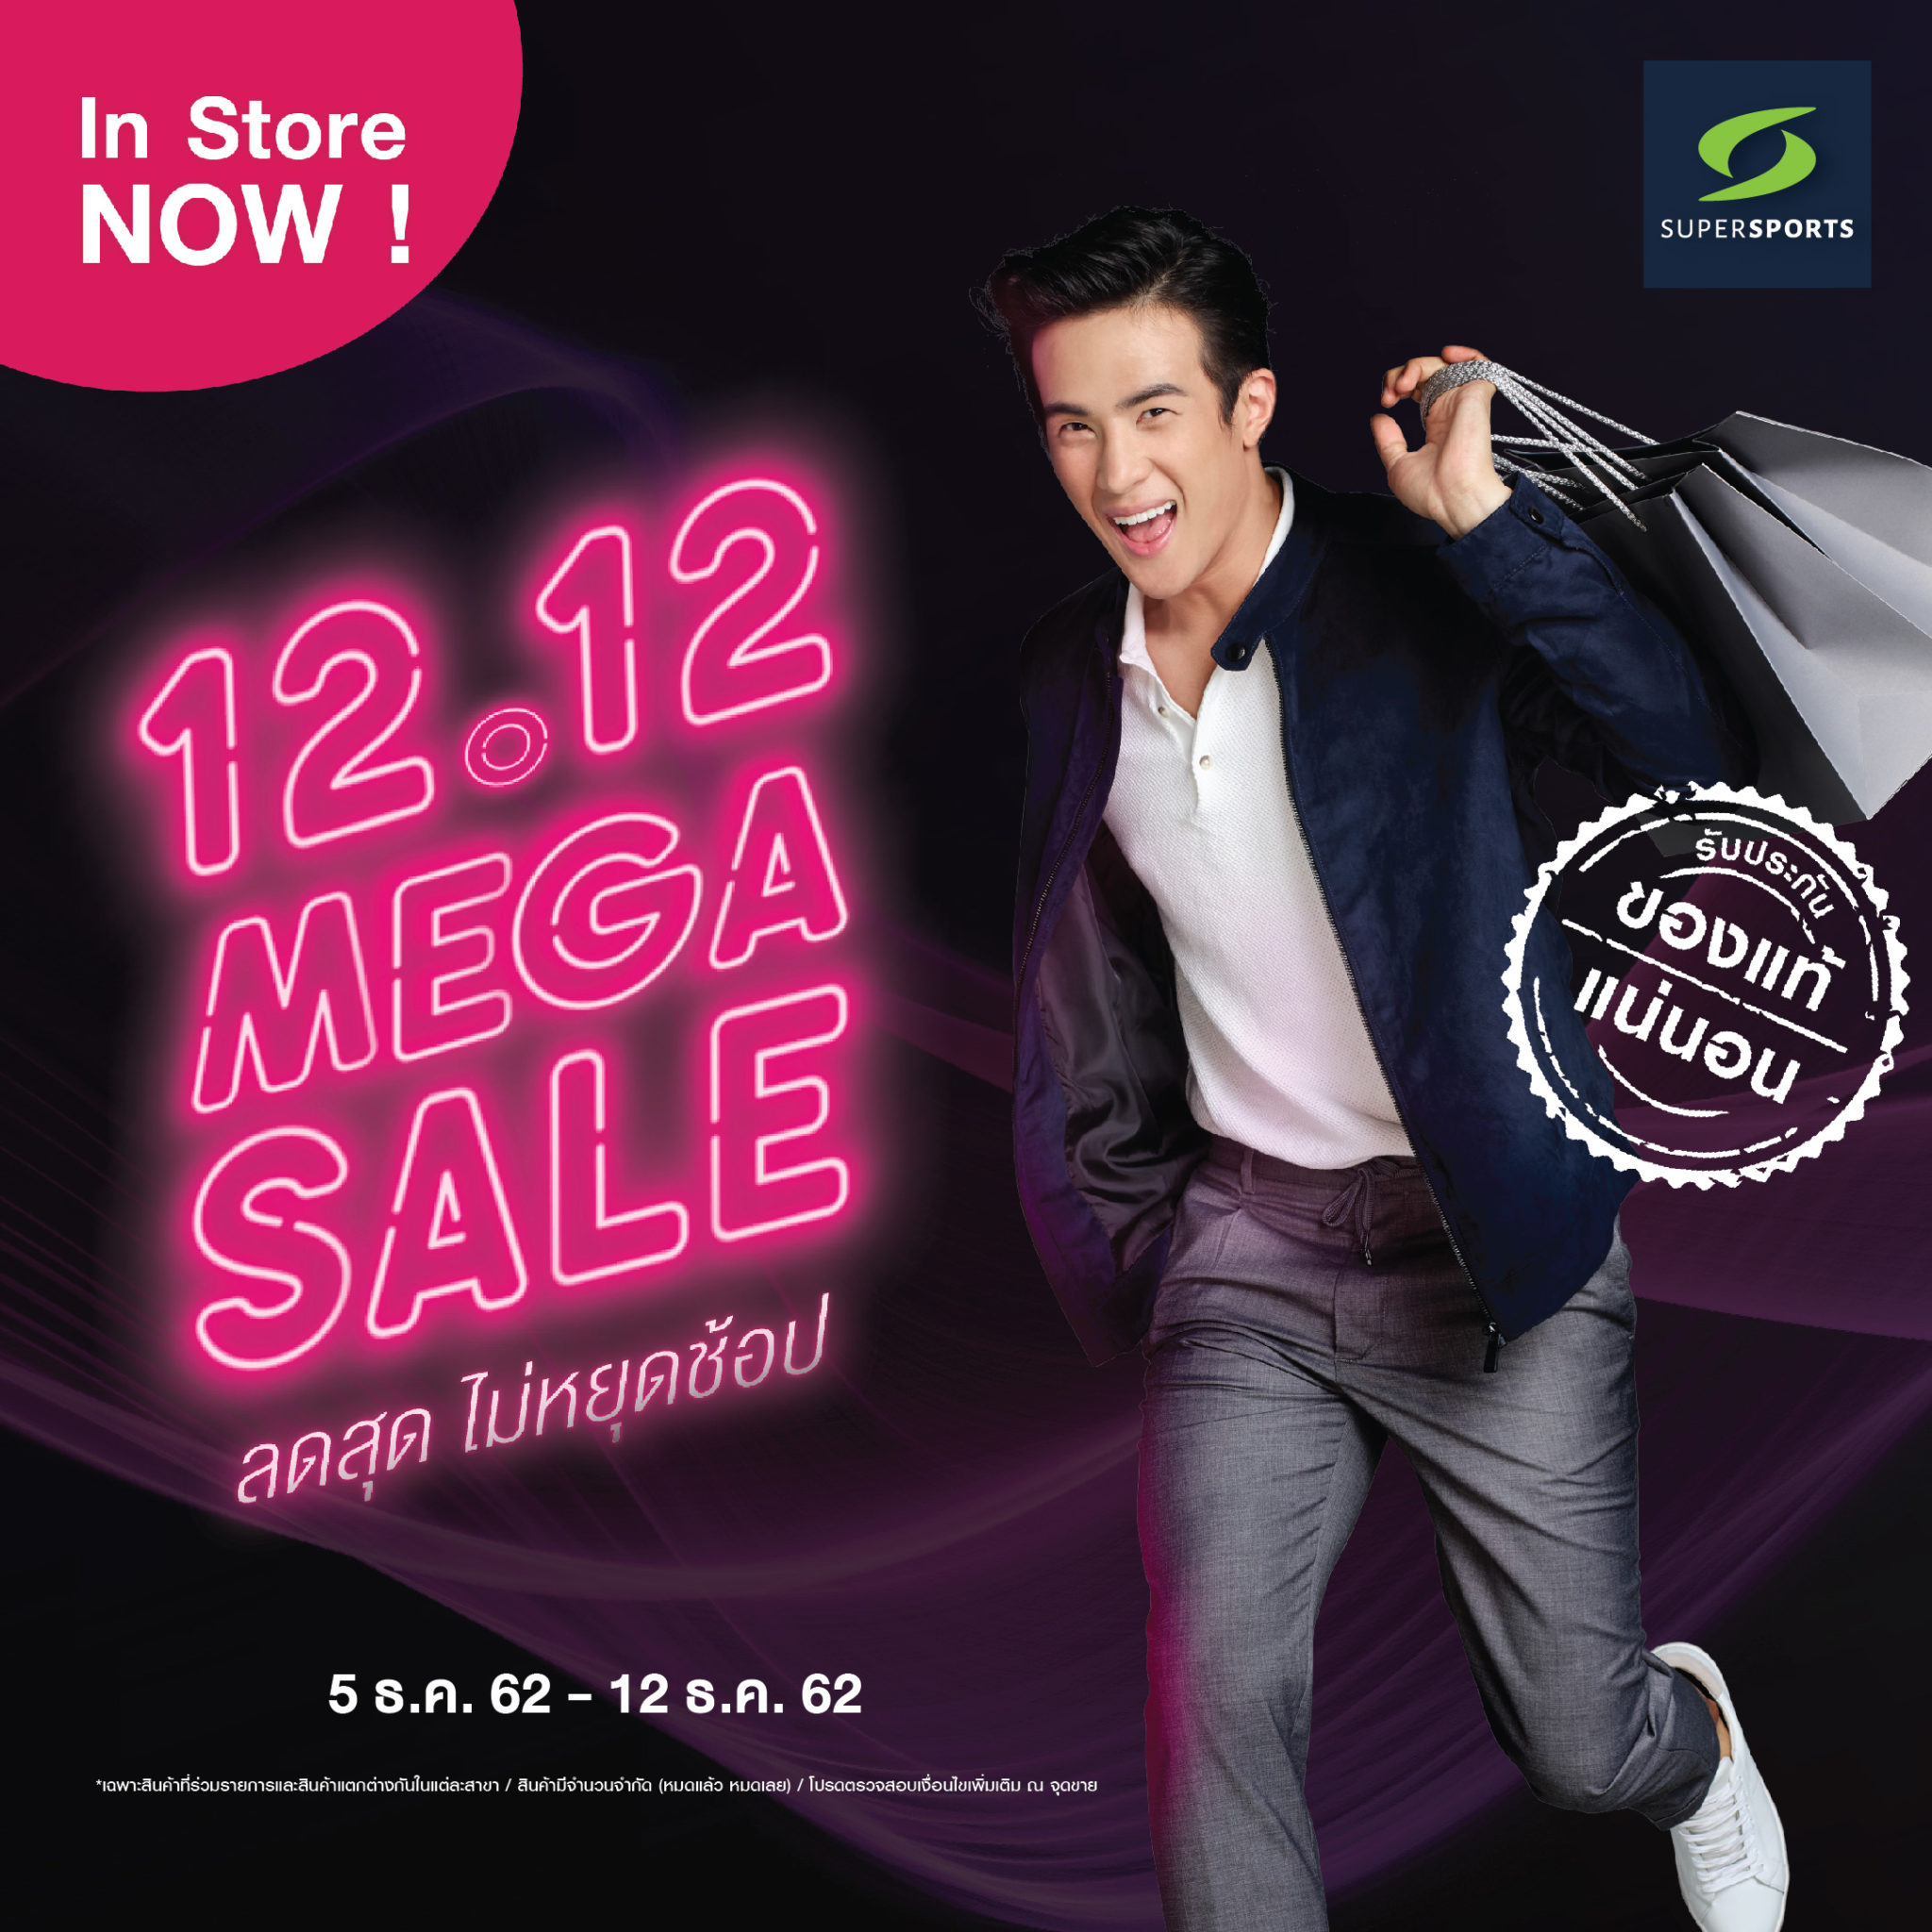 SUPERSPORTS 12.12 MEGA SALE Sale up to 50%